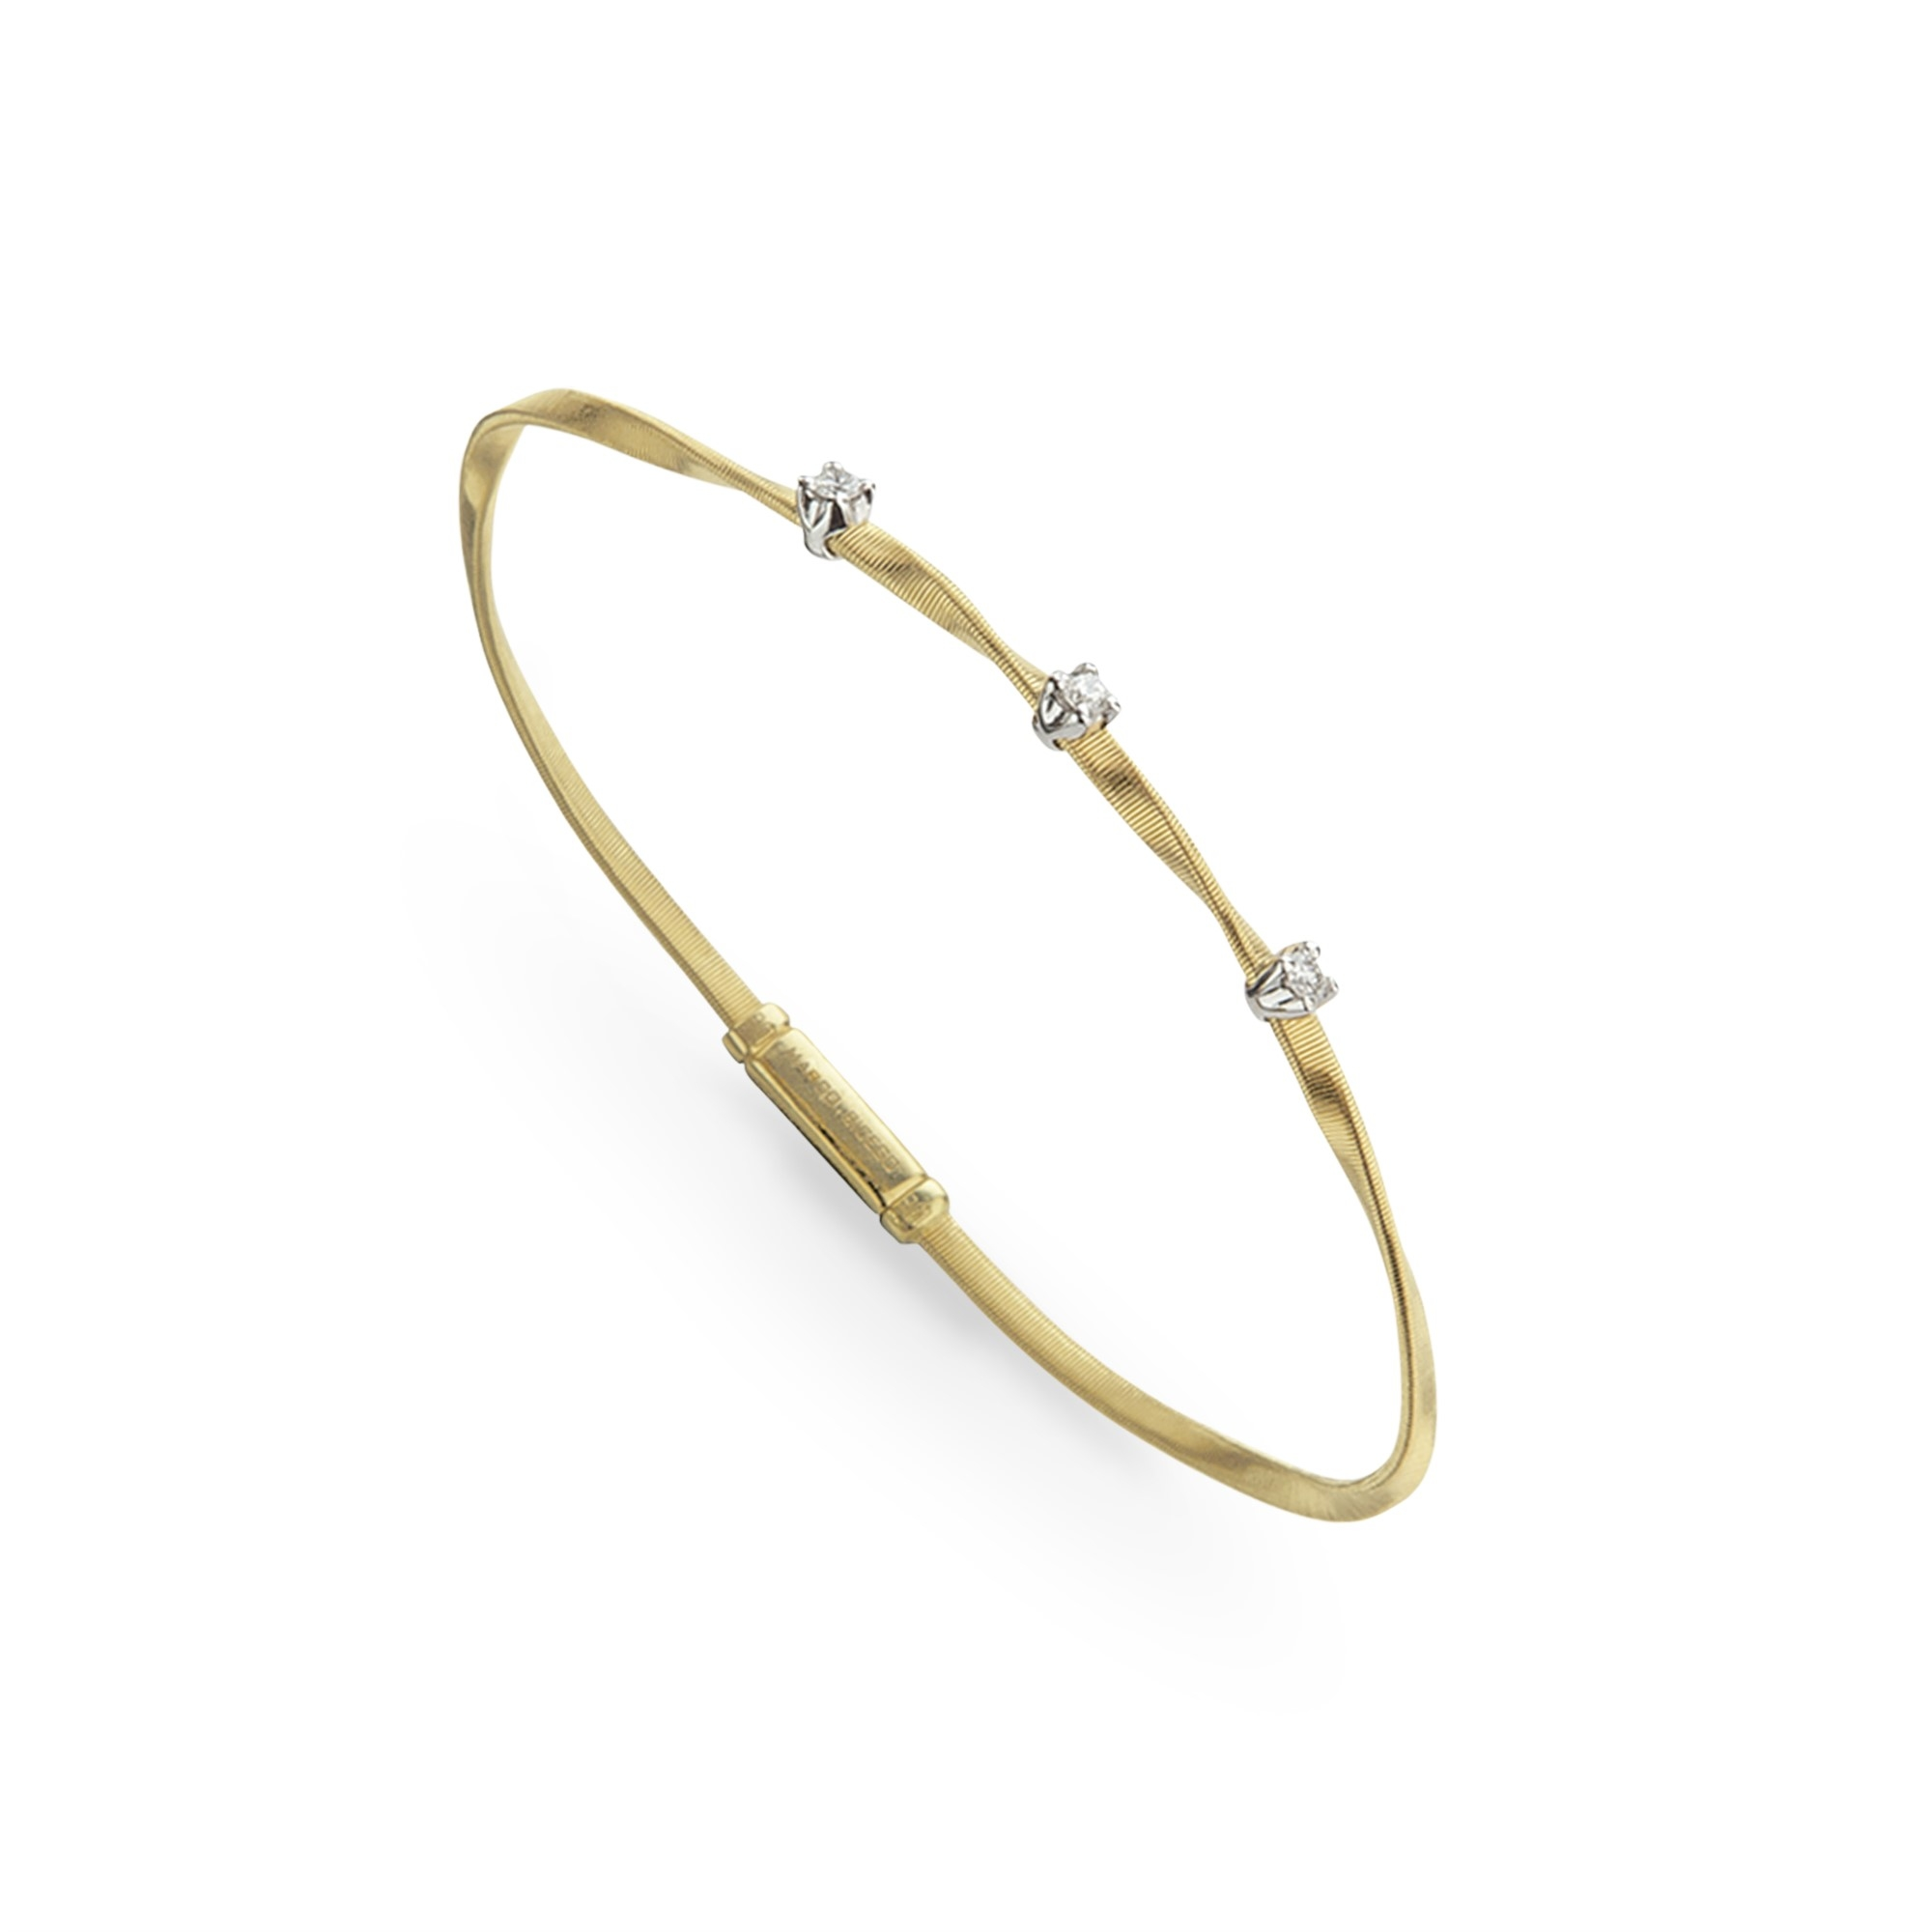 Marco Bicego 18K Yellow Gold .15cts  Diamond Gold Bangle with Stones BG337 B YW